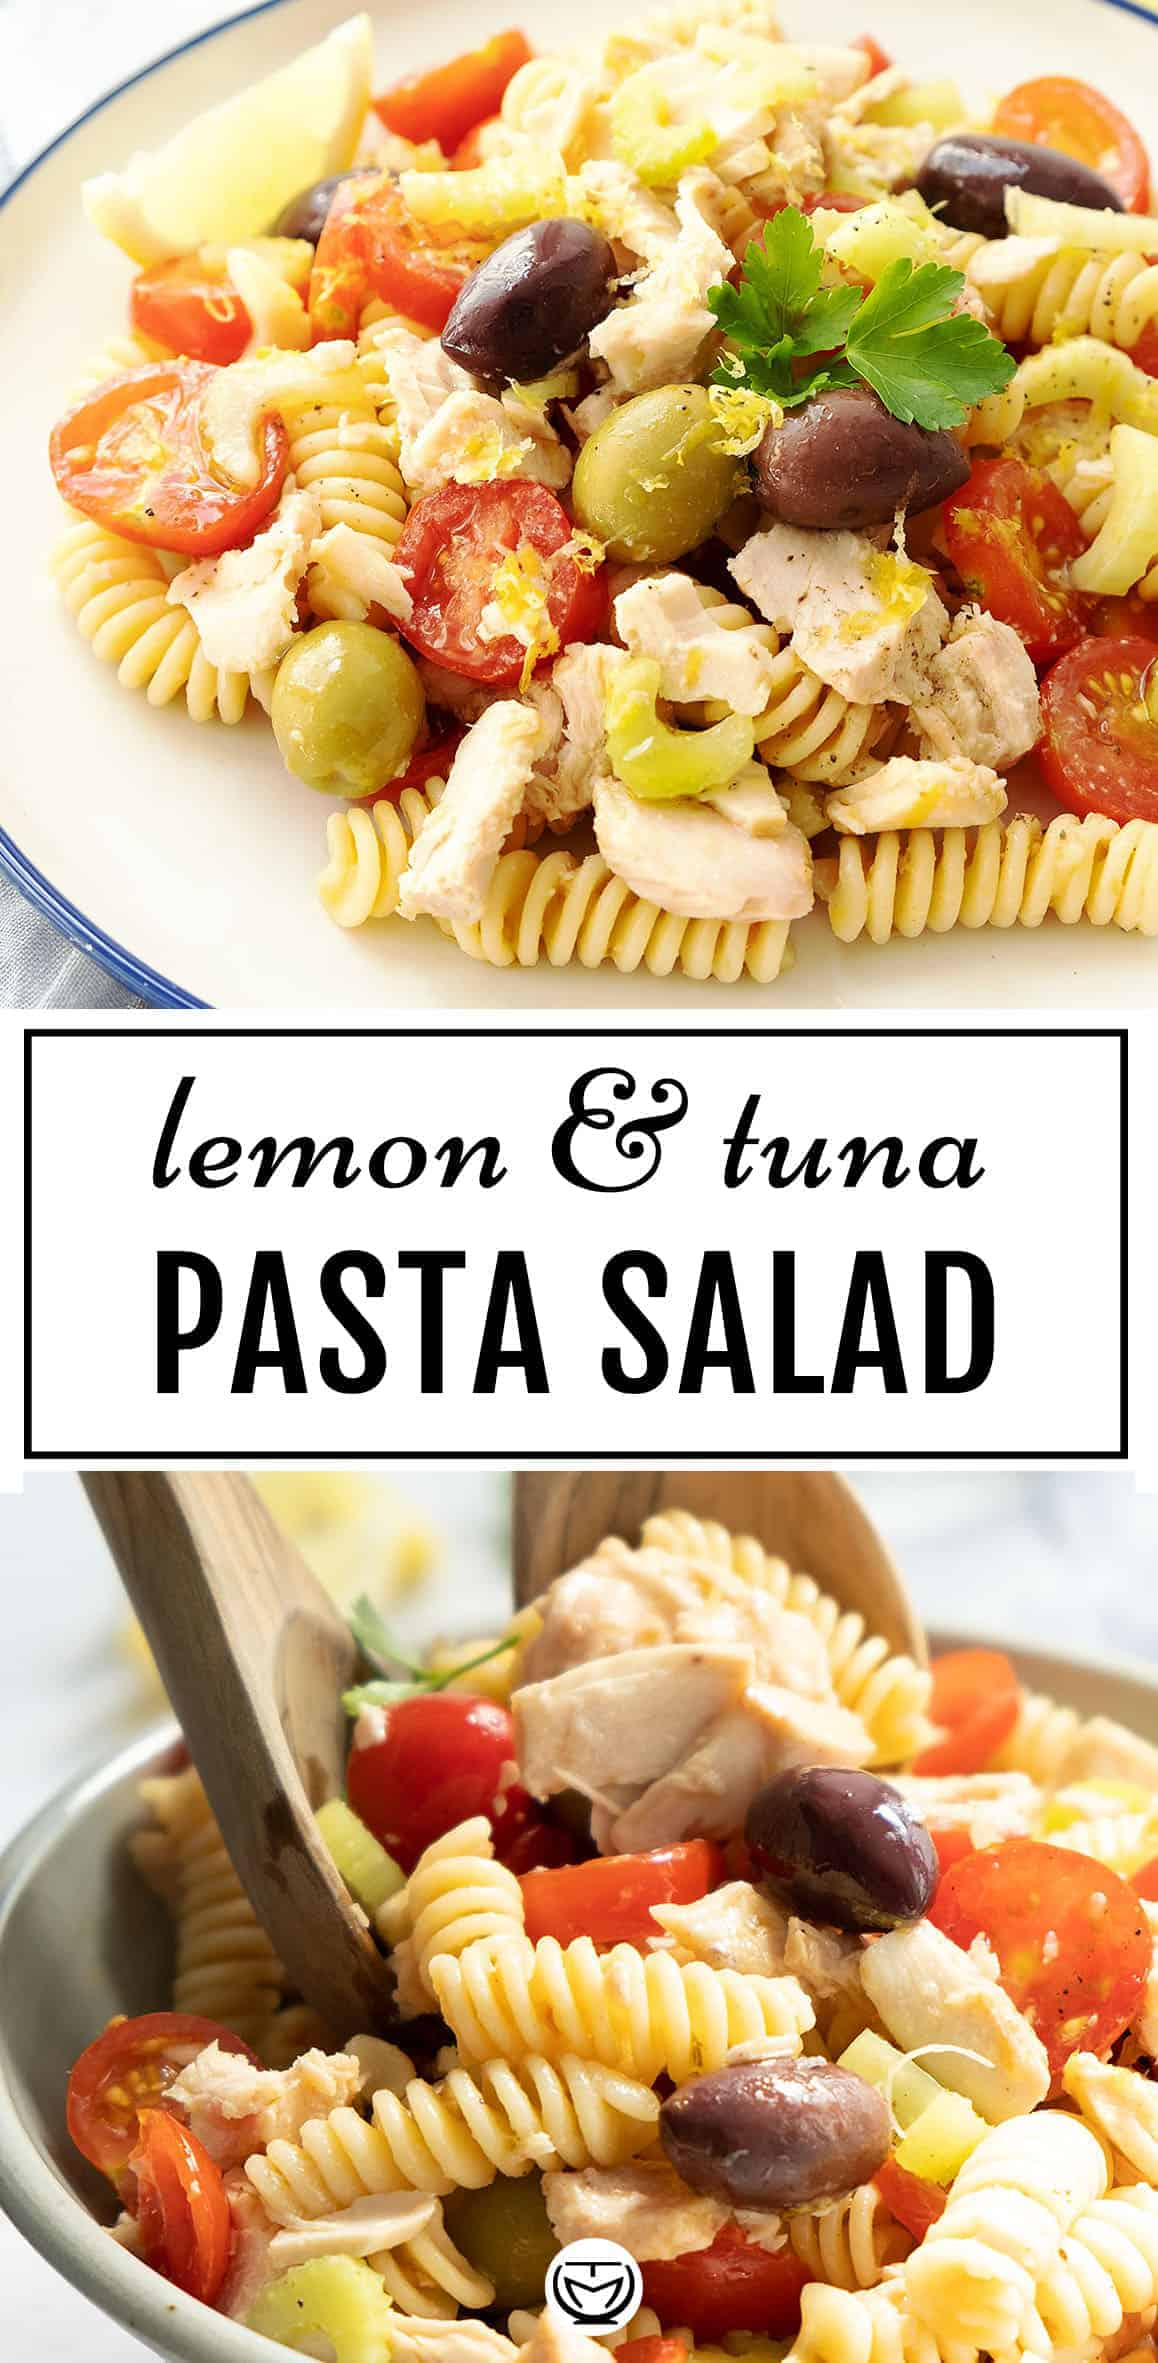 This delicious tuna pasta salad with lemon is light, fresh, packed with flavor, and ready in no time. #pastarecipes #pastasalads